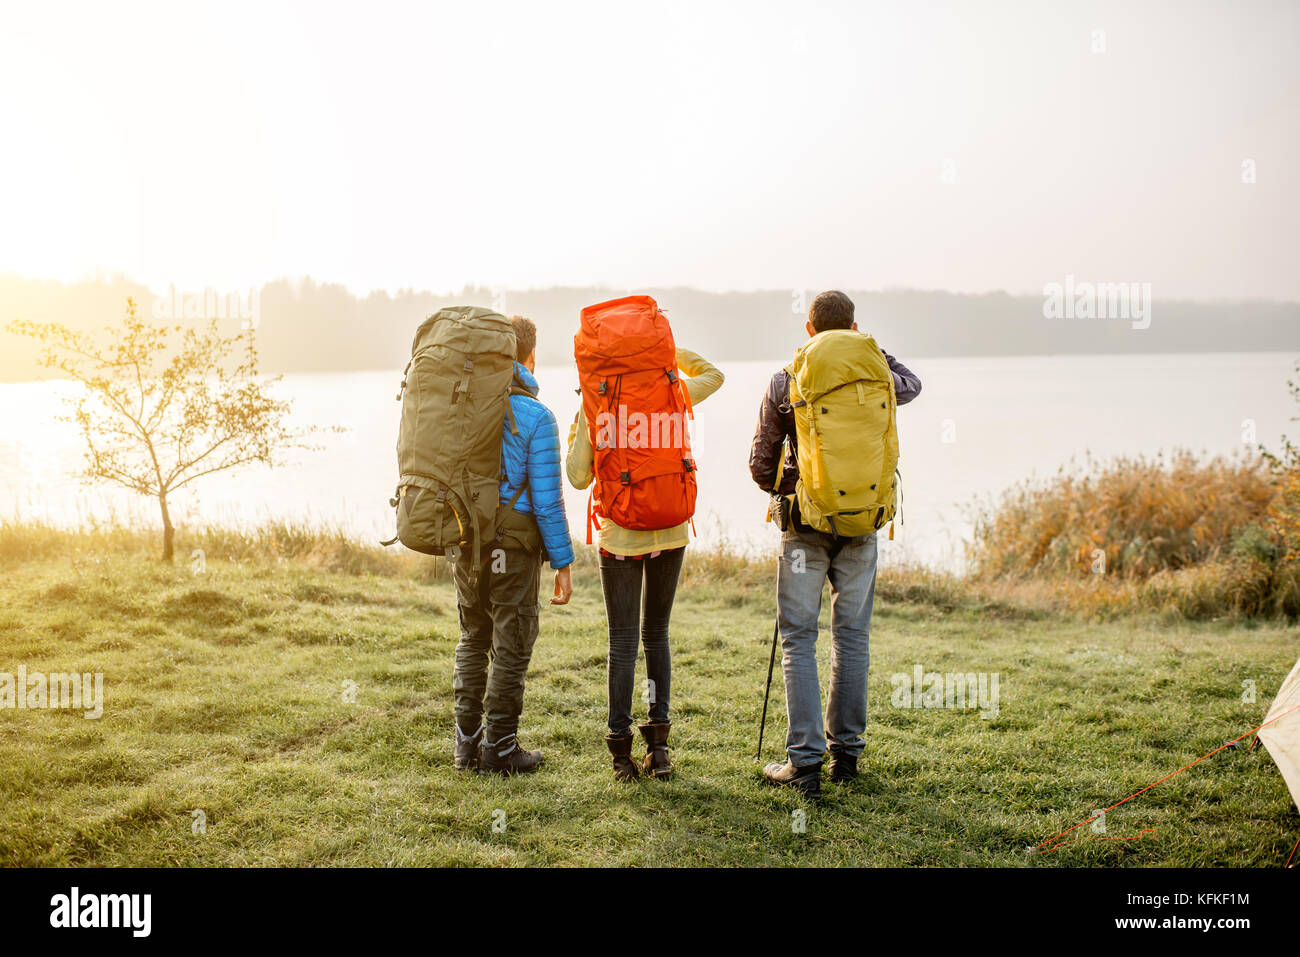 Hikers with backpacks outdoors - Stock Image